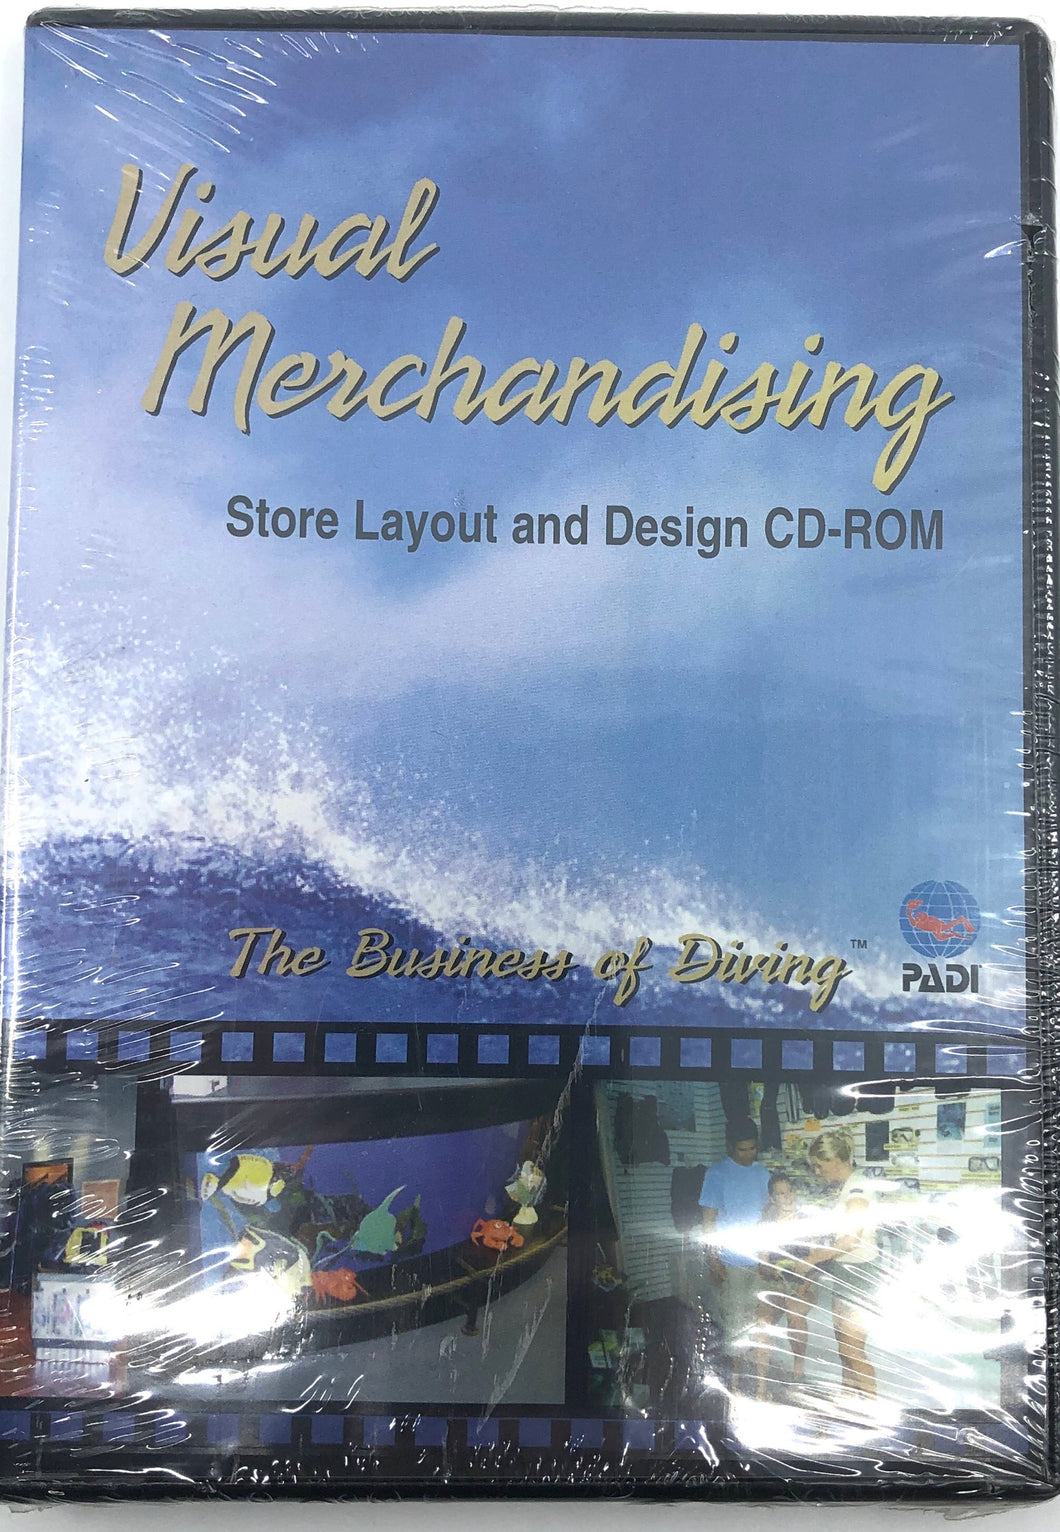 Padi Visual Merchandising Store Layout DVD